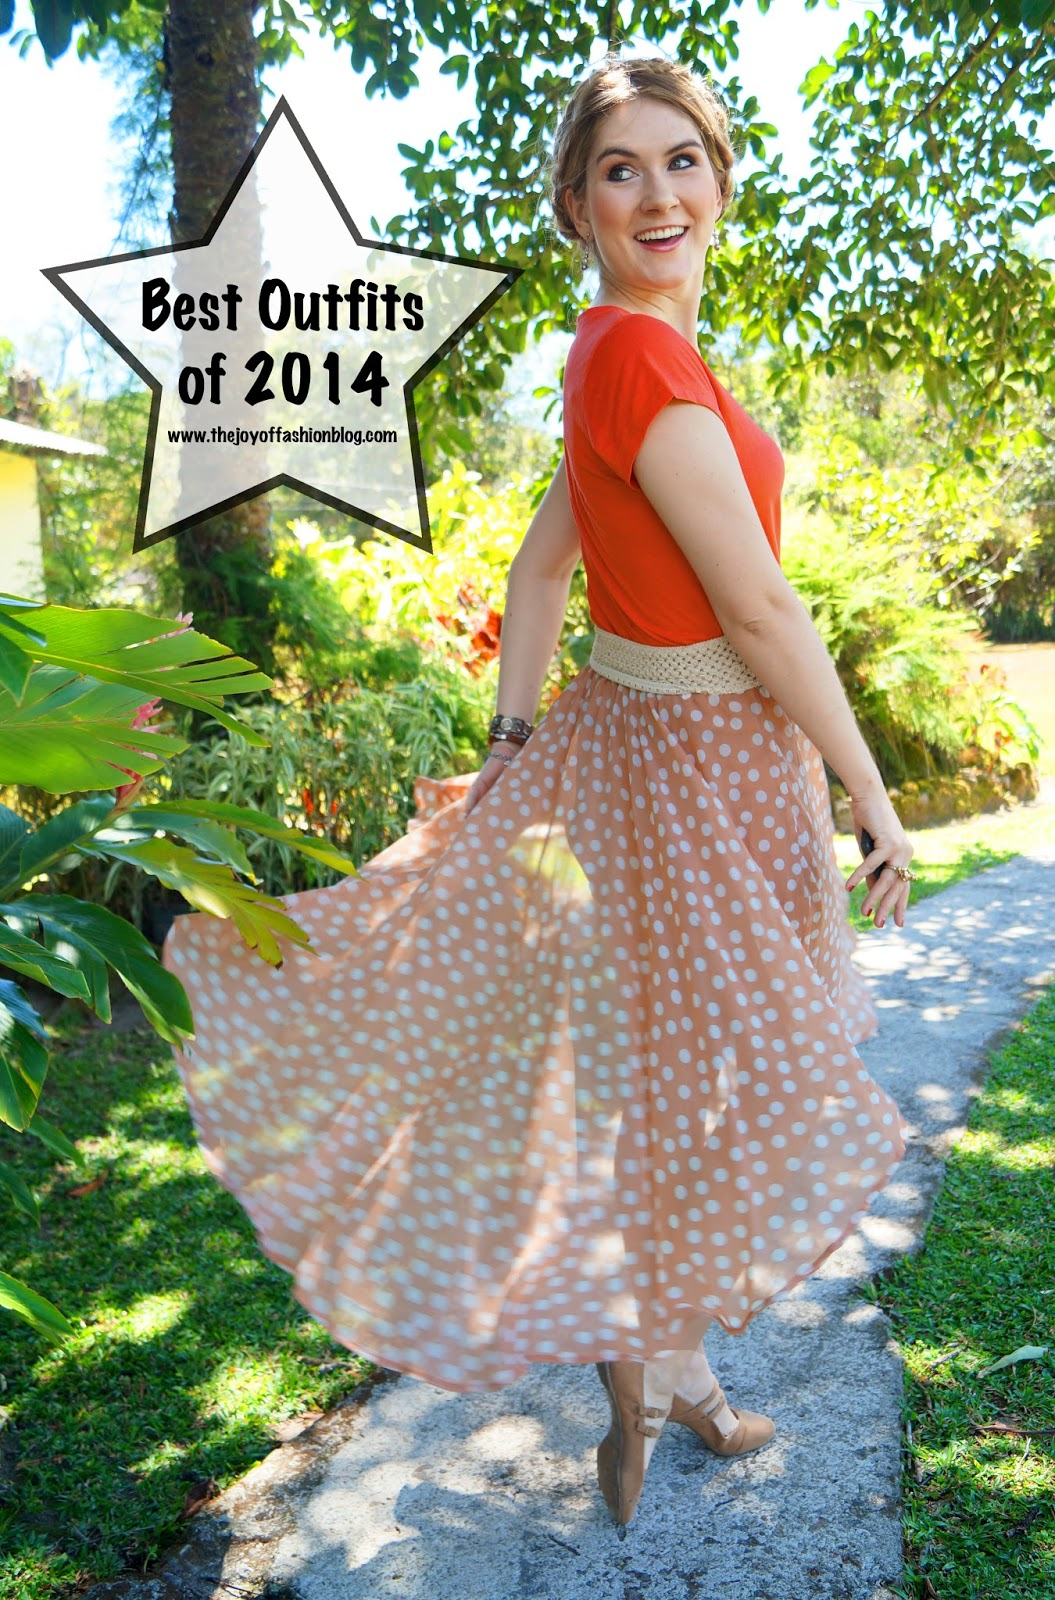 Best Outfits of 2014